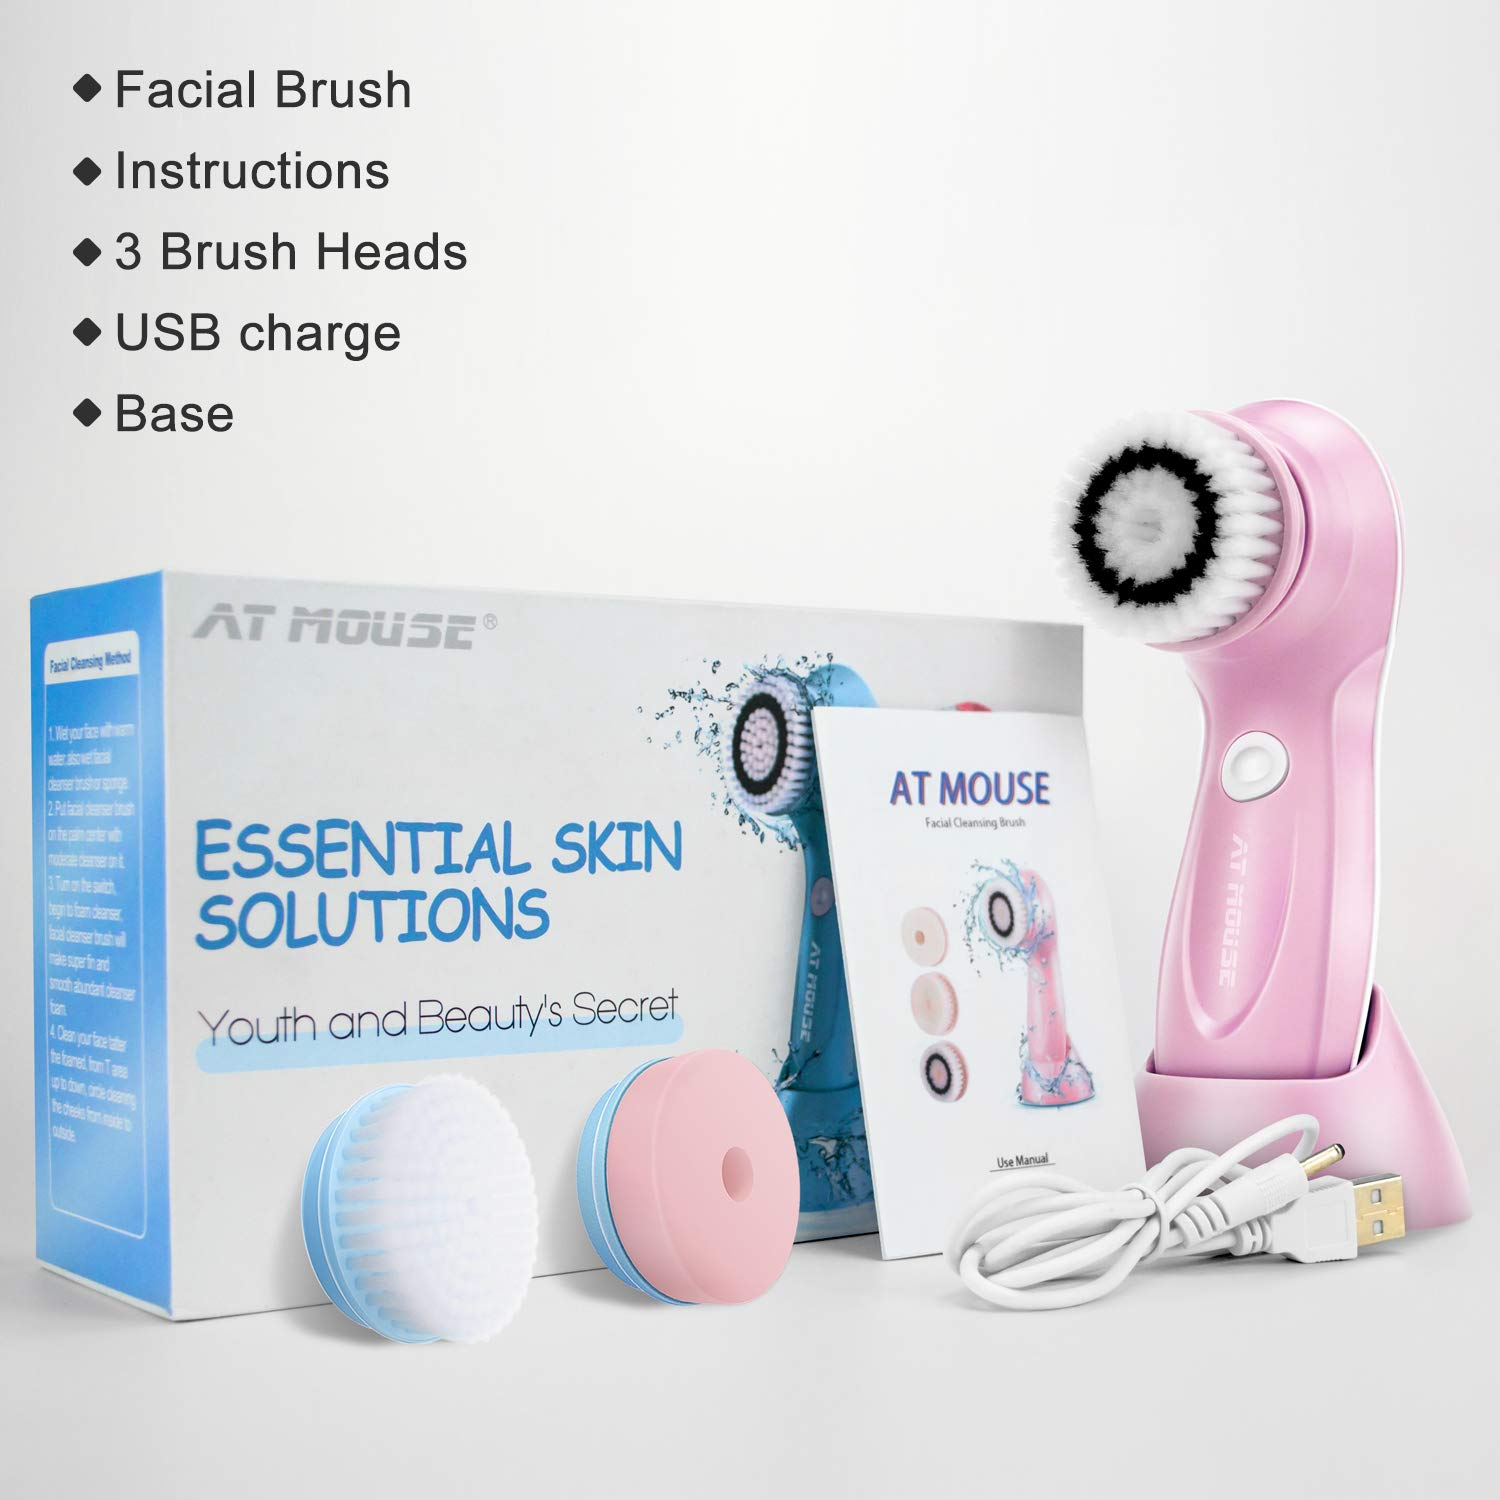 Facial Cleansing Brush Rechargeable - Electirc Spin Face Brush - 2 Speed Waterproof Facial Brush